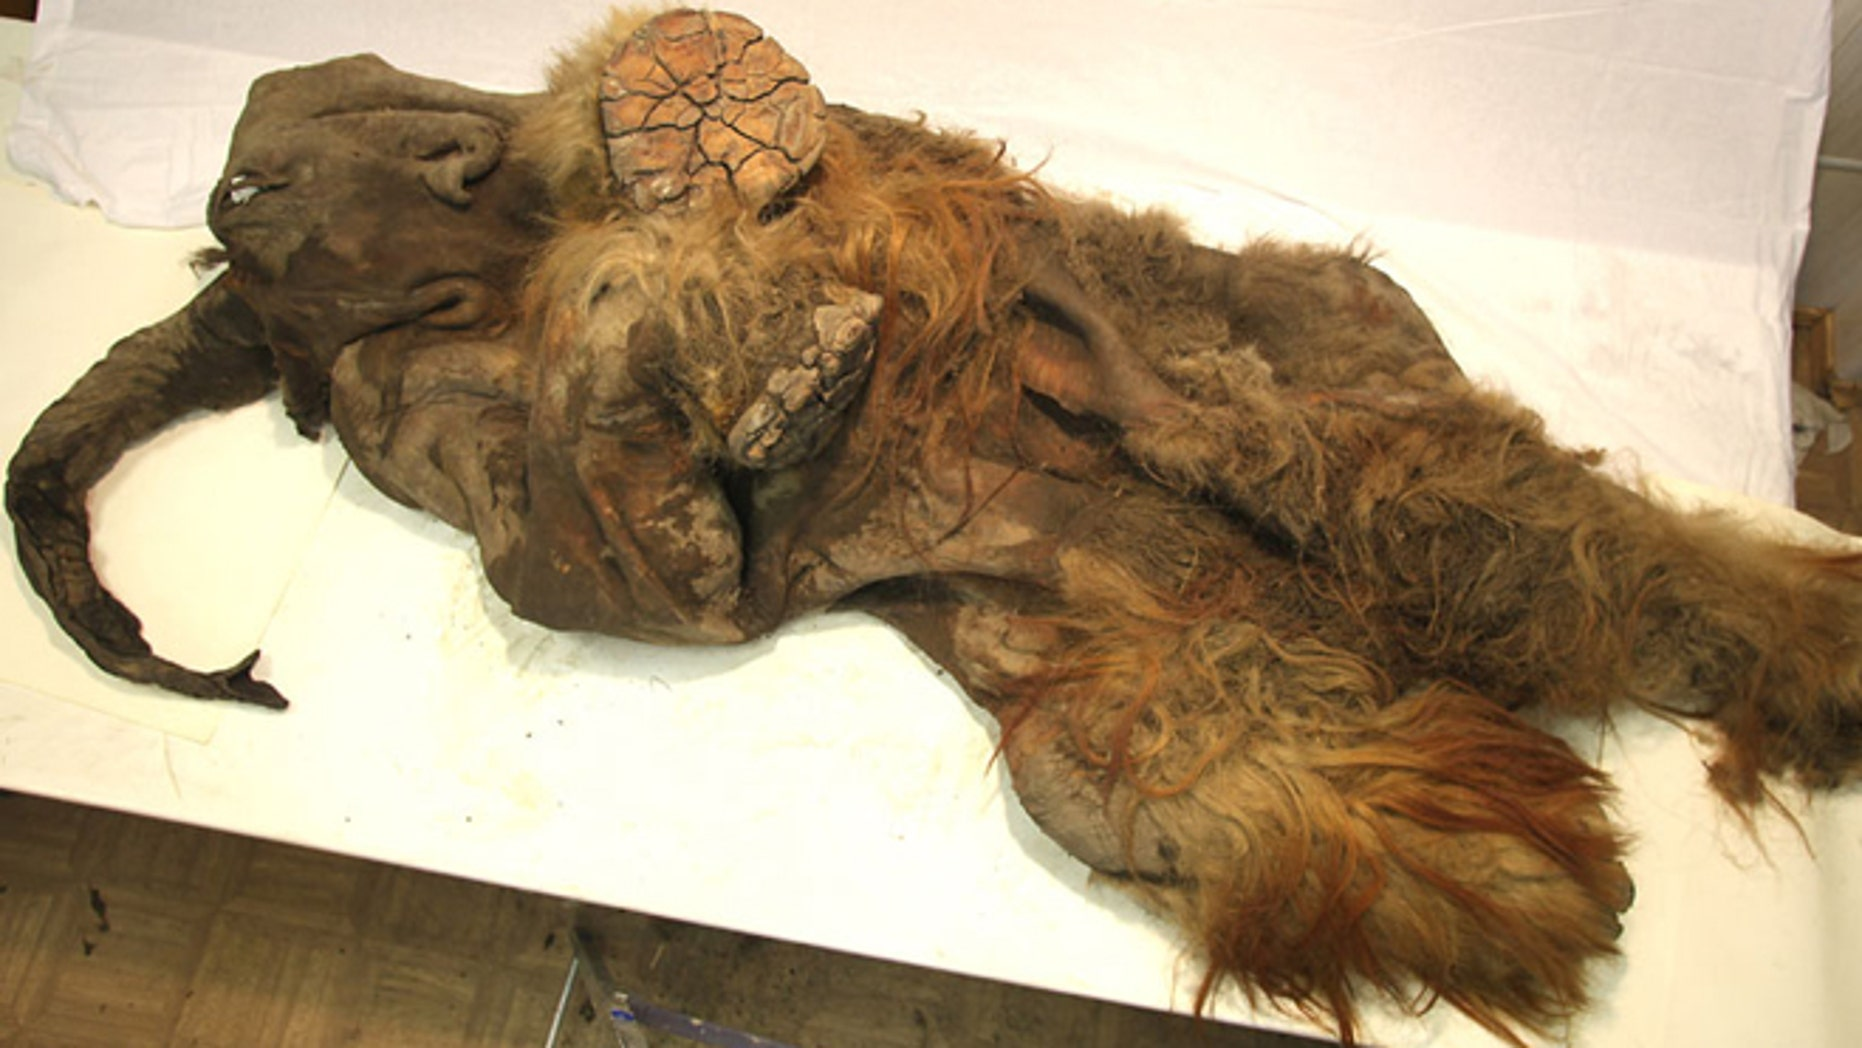 April 4, 2012: A newly discovered frozen mammoth, which is thought to have been approximately two and a half years old when it died, appears to have been cut open at some point.